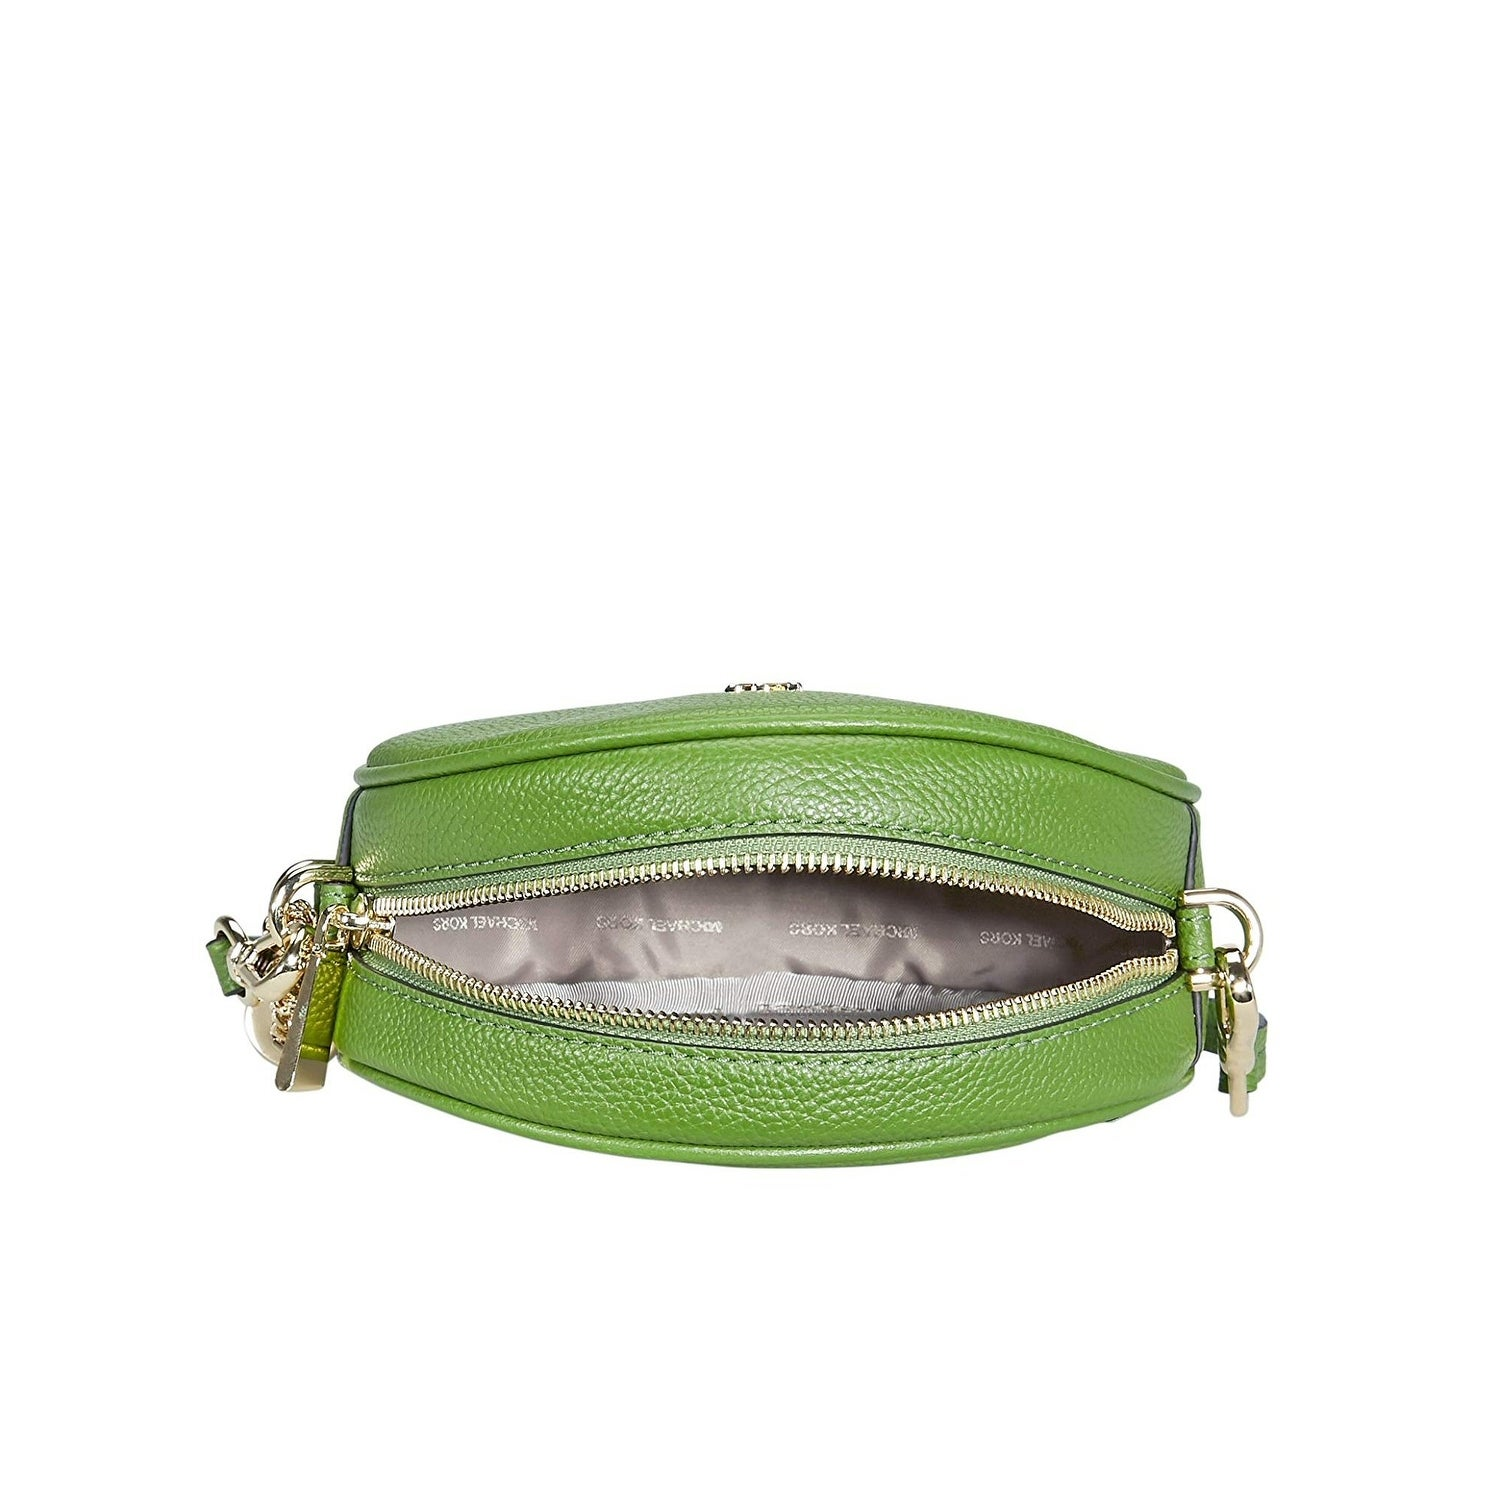 dd72ea3bbabf Shop MICHAEL Michael Kors Pebble Leather Medium Canteen Crossbody Bag True  Green Gold - One size - Free Shipping Today - Overstock - 25752401